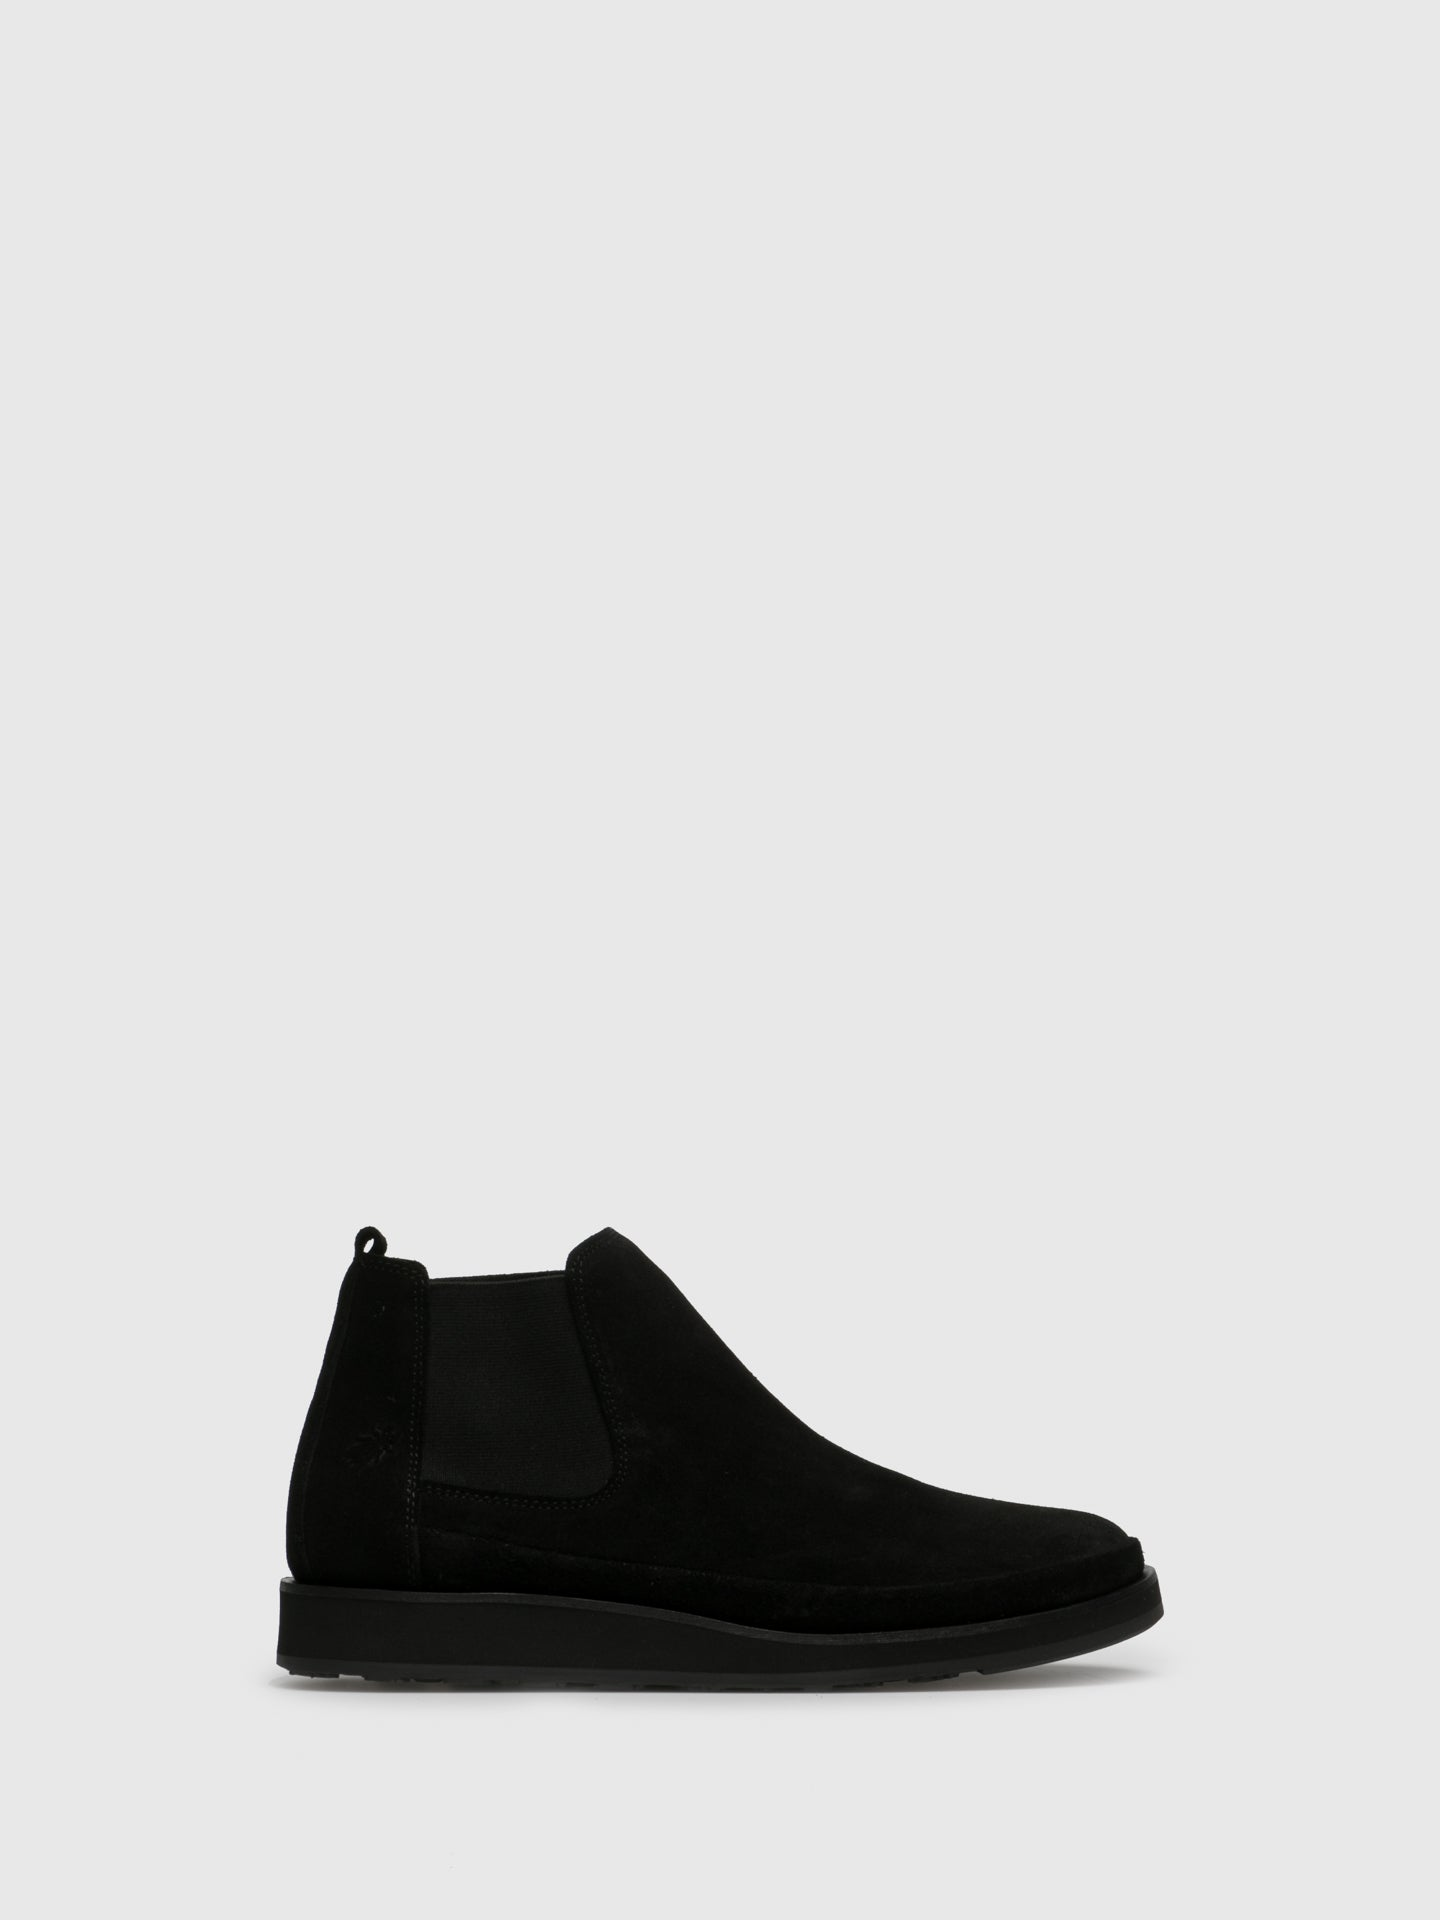 Fly London Black Leather Chelsea Ankle Boots